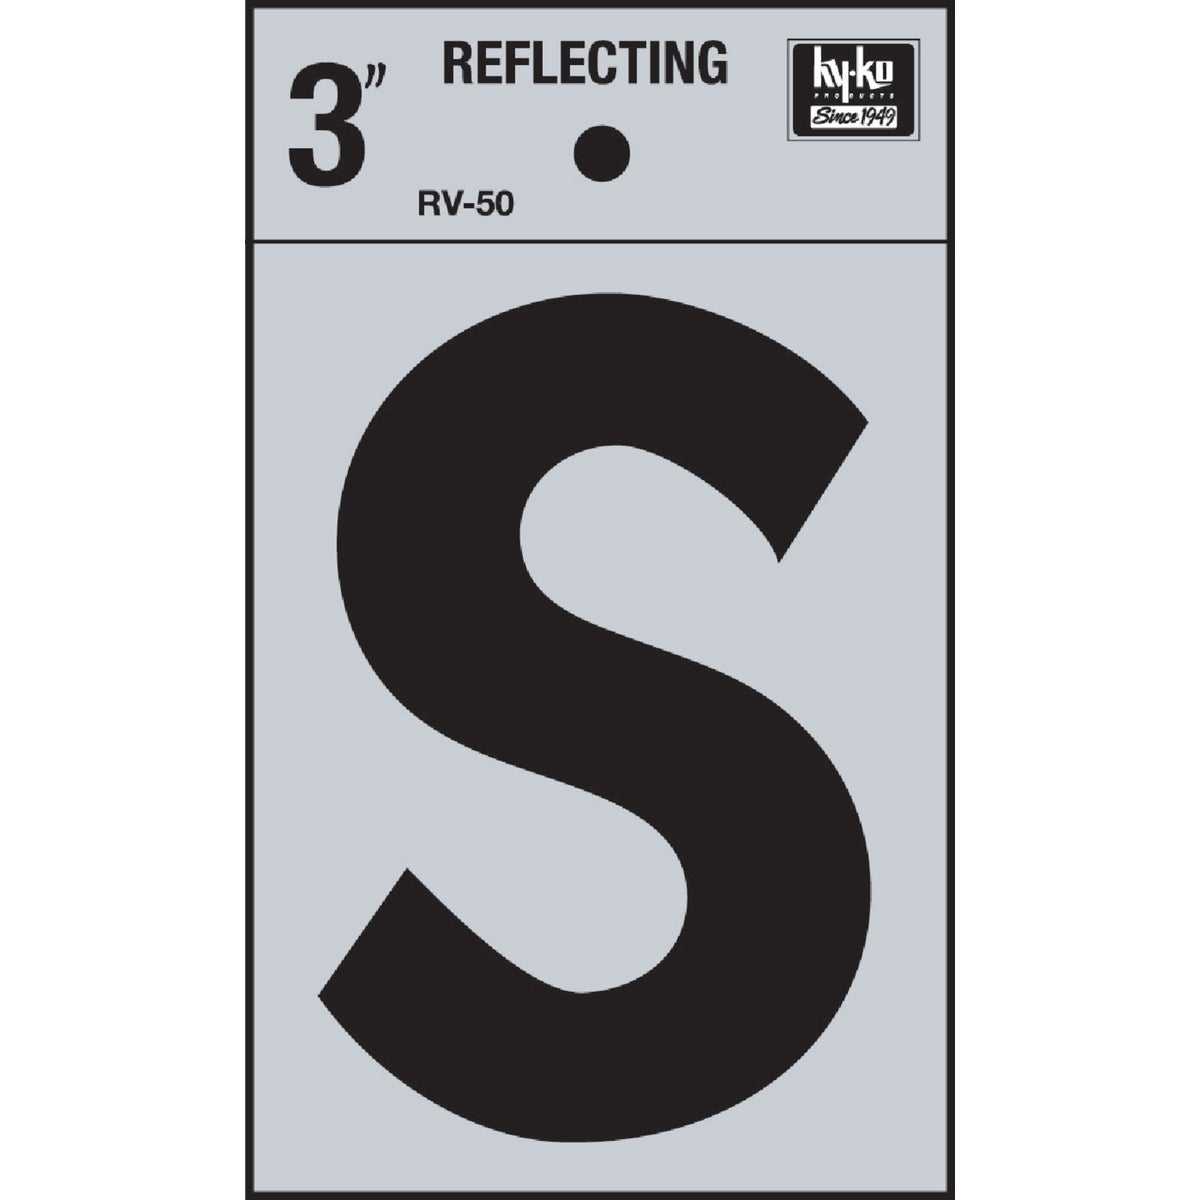 "3"" REFLECT LETTER S - RV-50S by Hy Ko Prods Co"